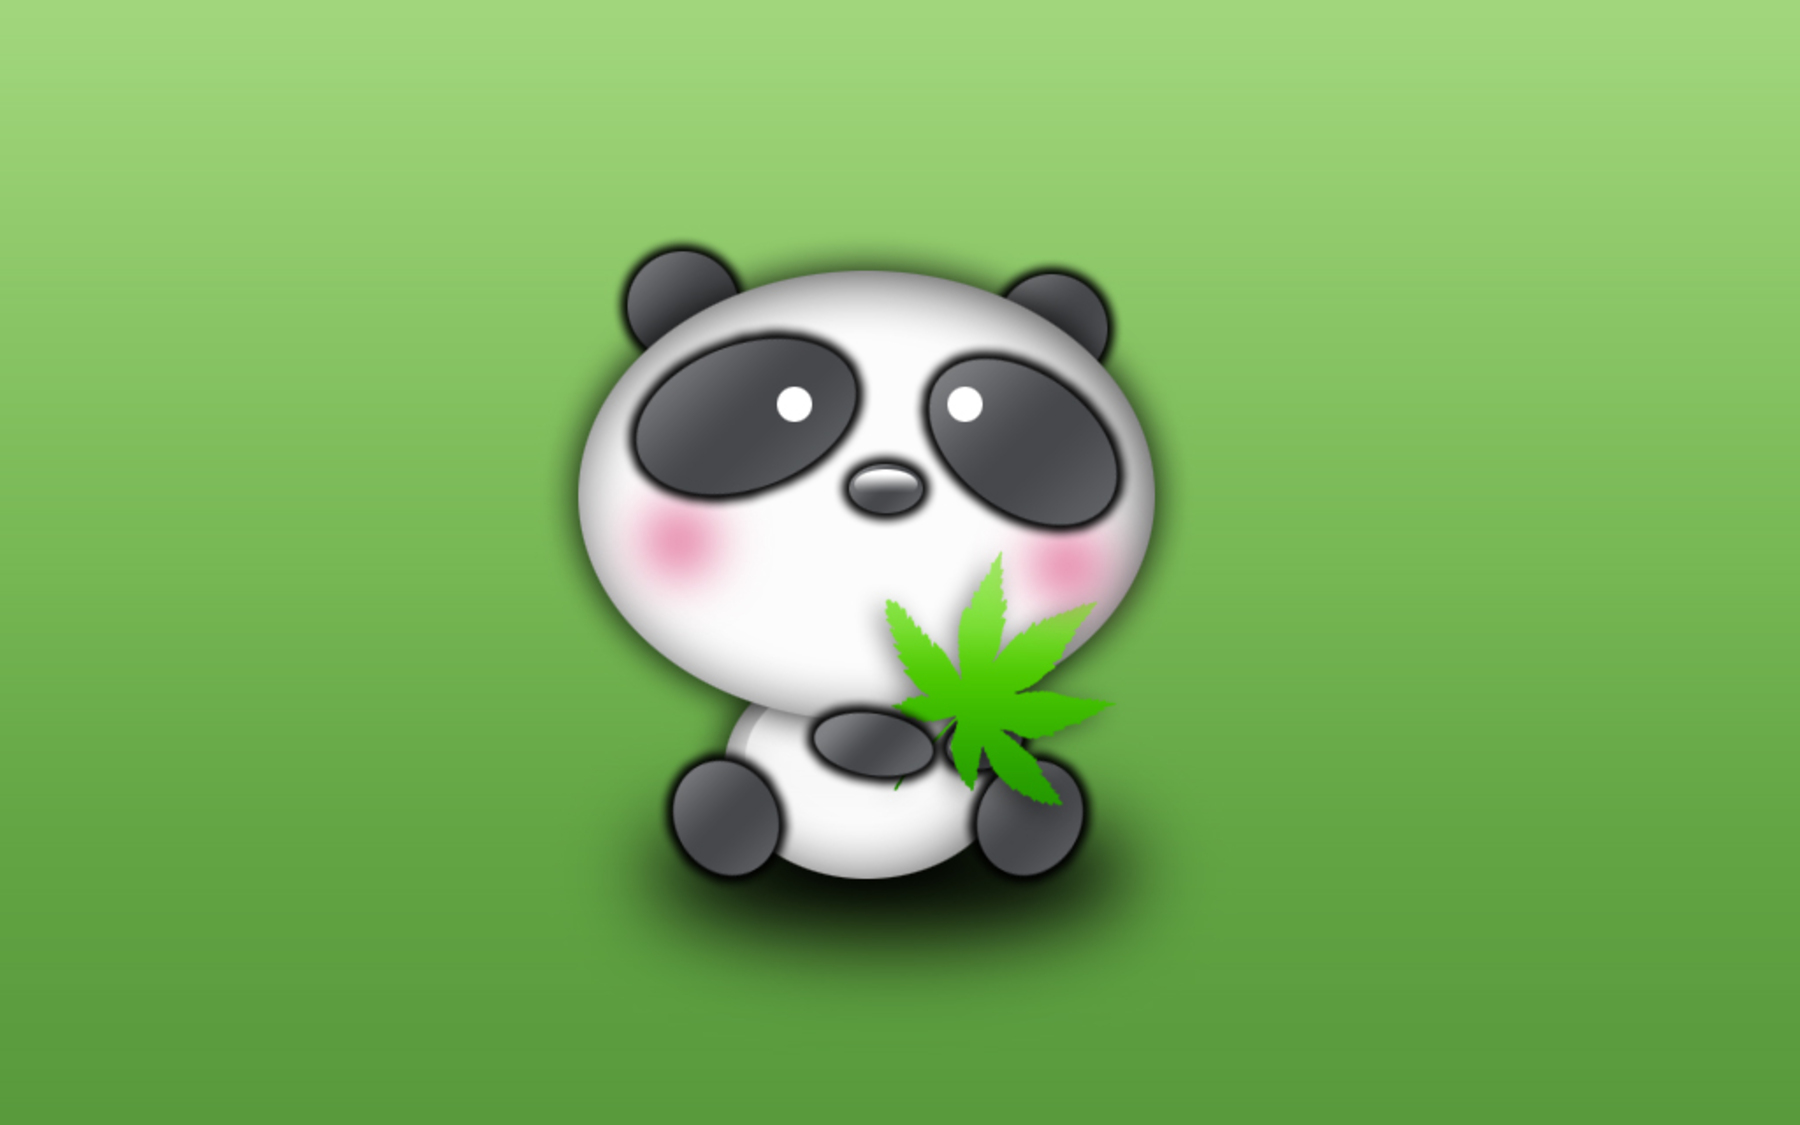 Cute Panda Wallpaper, Wallpaper, Cute Panda Wallpaper Hd Wallpaper Wallpaper